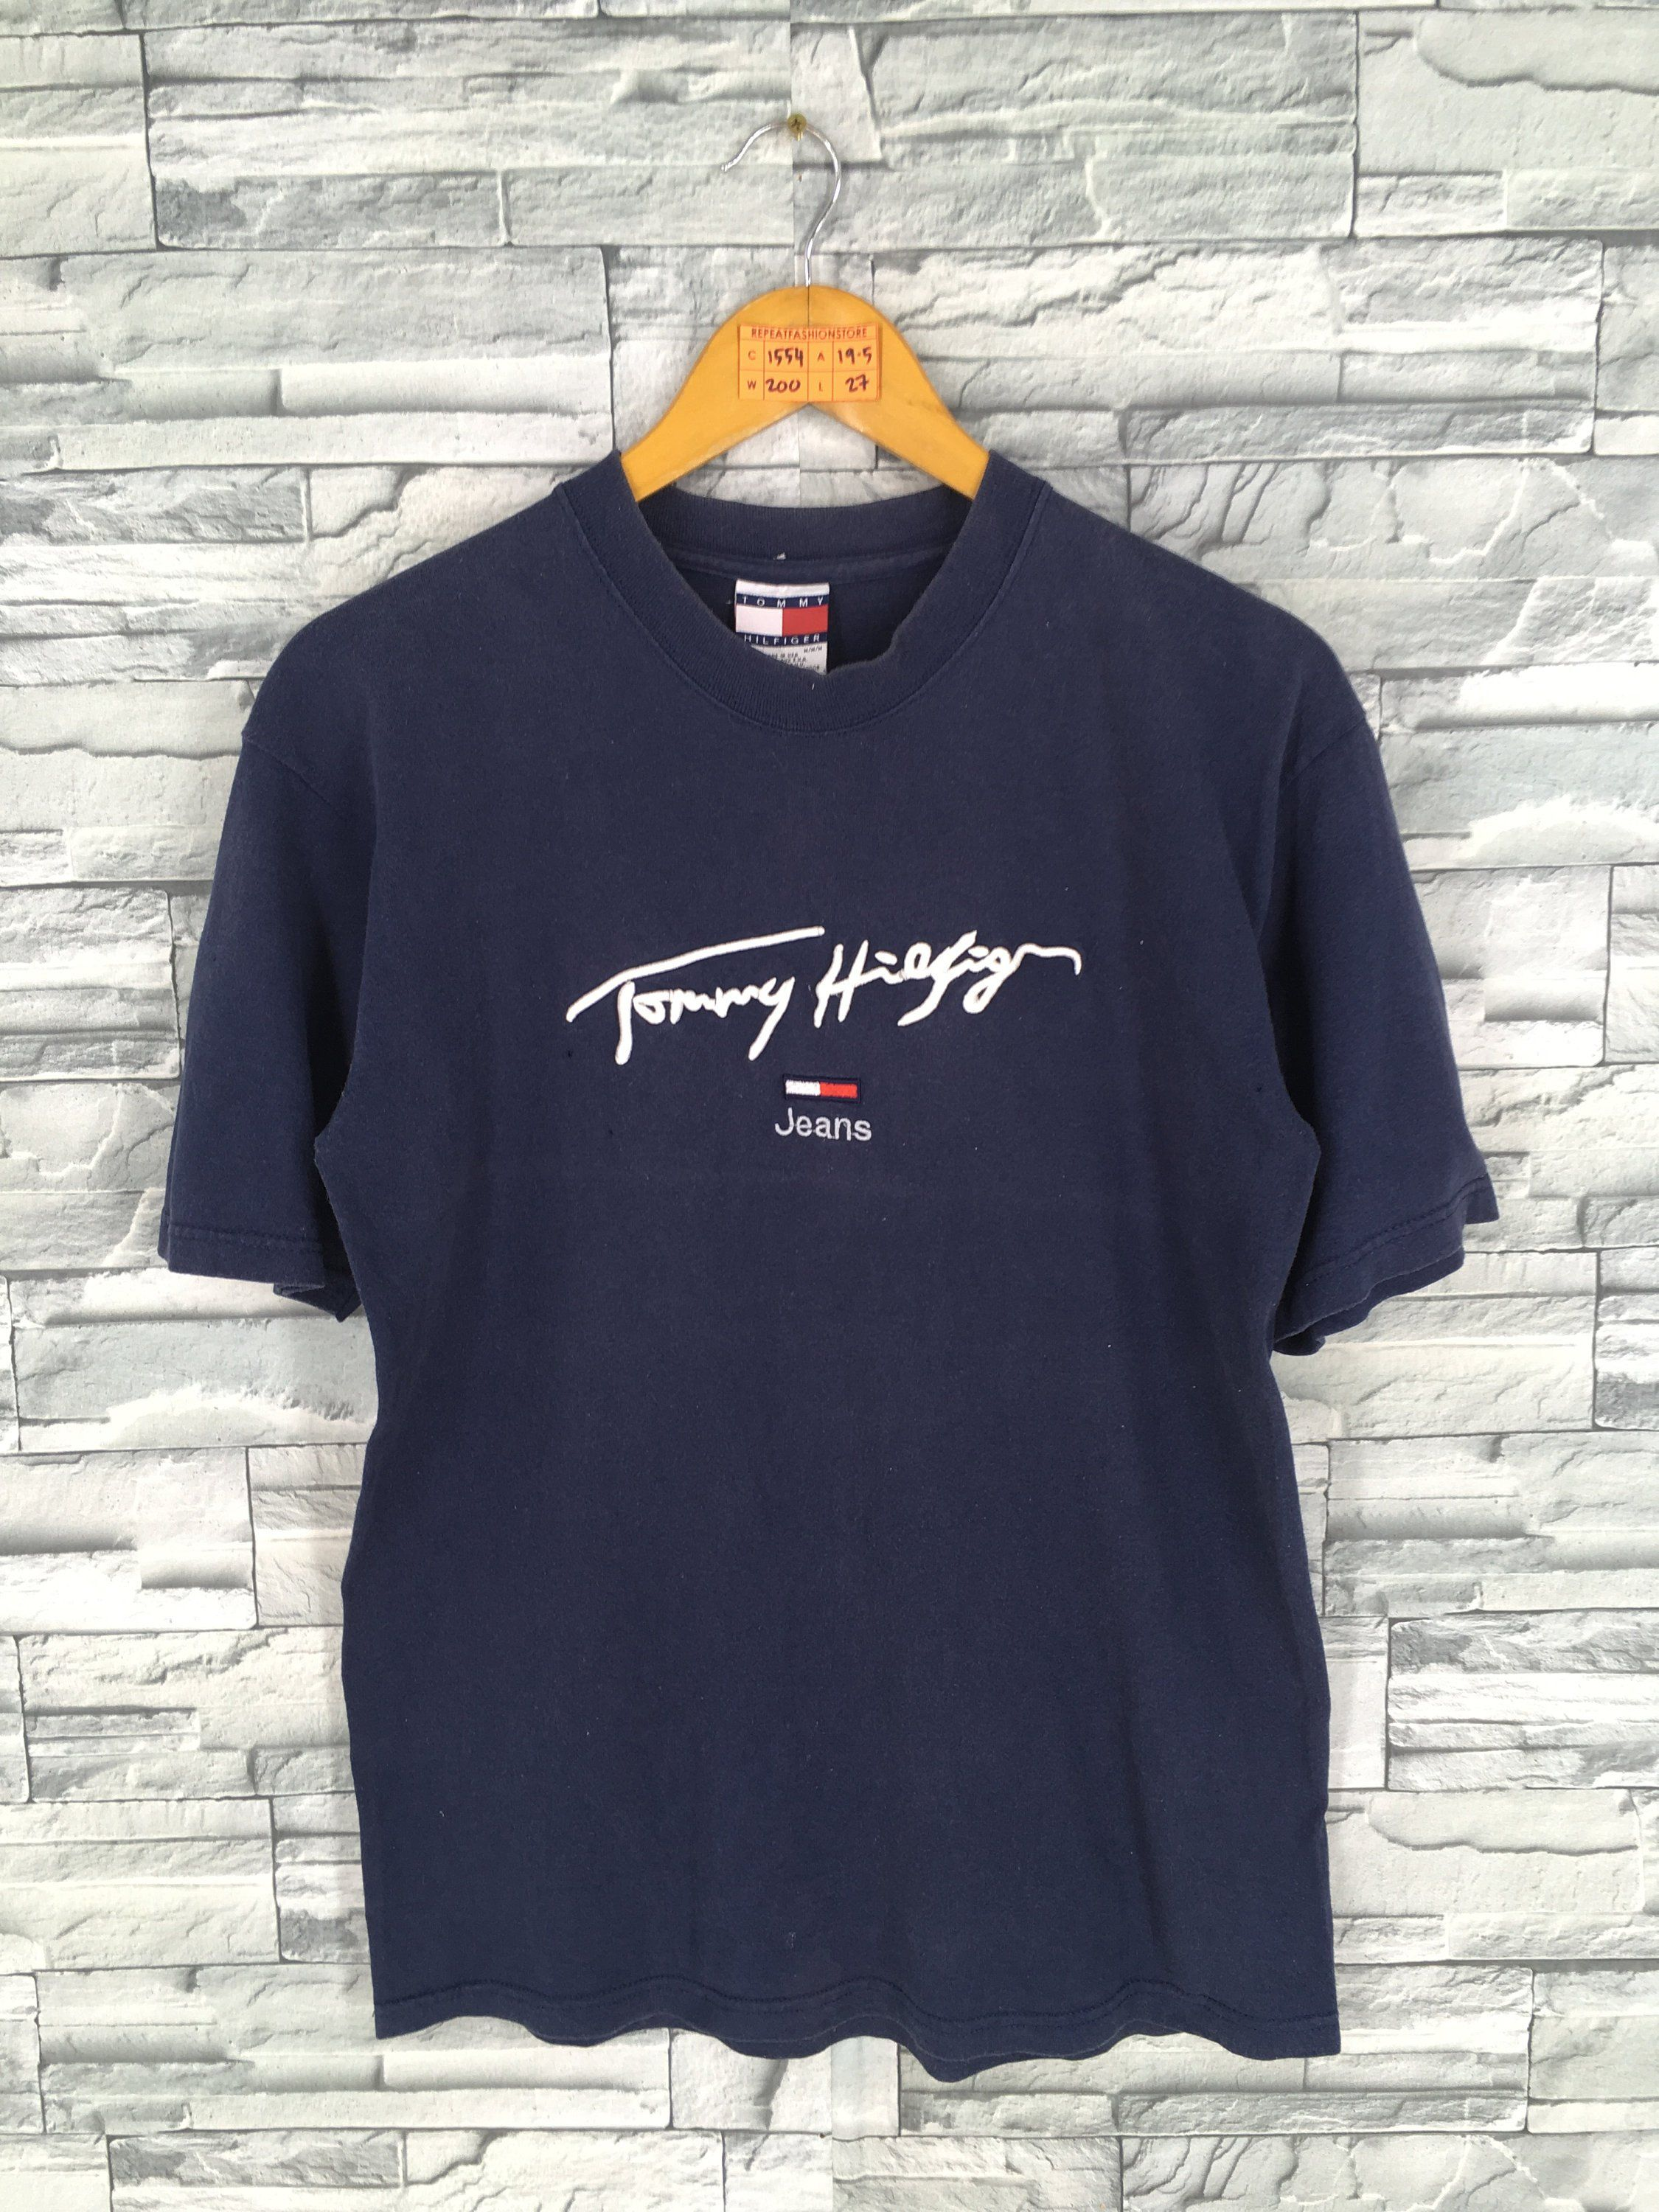 db12f80b3fb3 Vintage 1990 s TOMMY HILFIGER T shirt Medium New York Tommy Jeans 85 Hip Hop  Usa Tommy Saling Gear Navy Blue Tee T shirt Size M by REPEATFASHIONSTORE on  ...